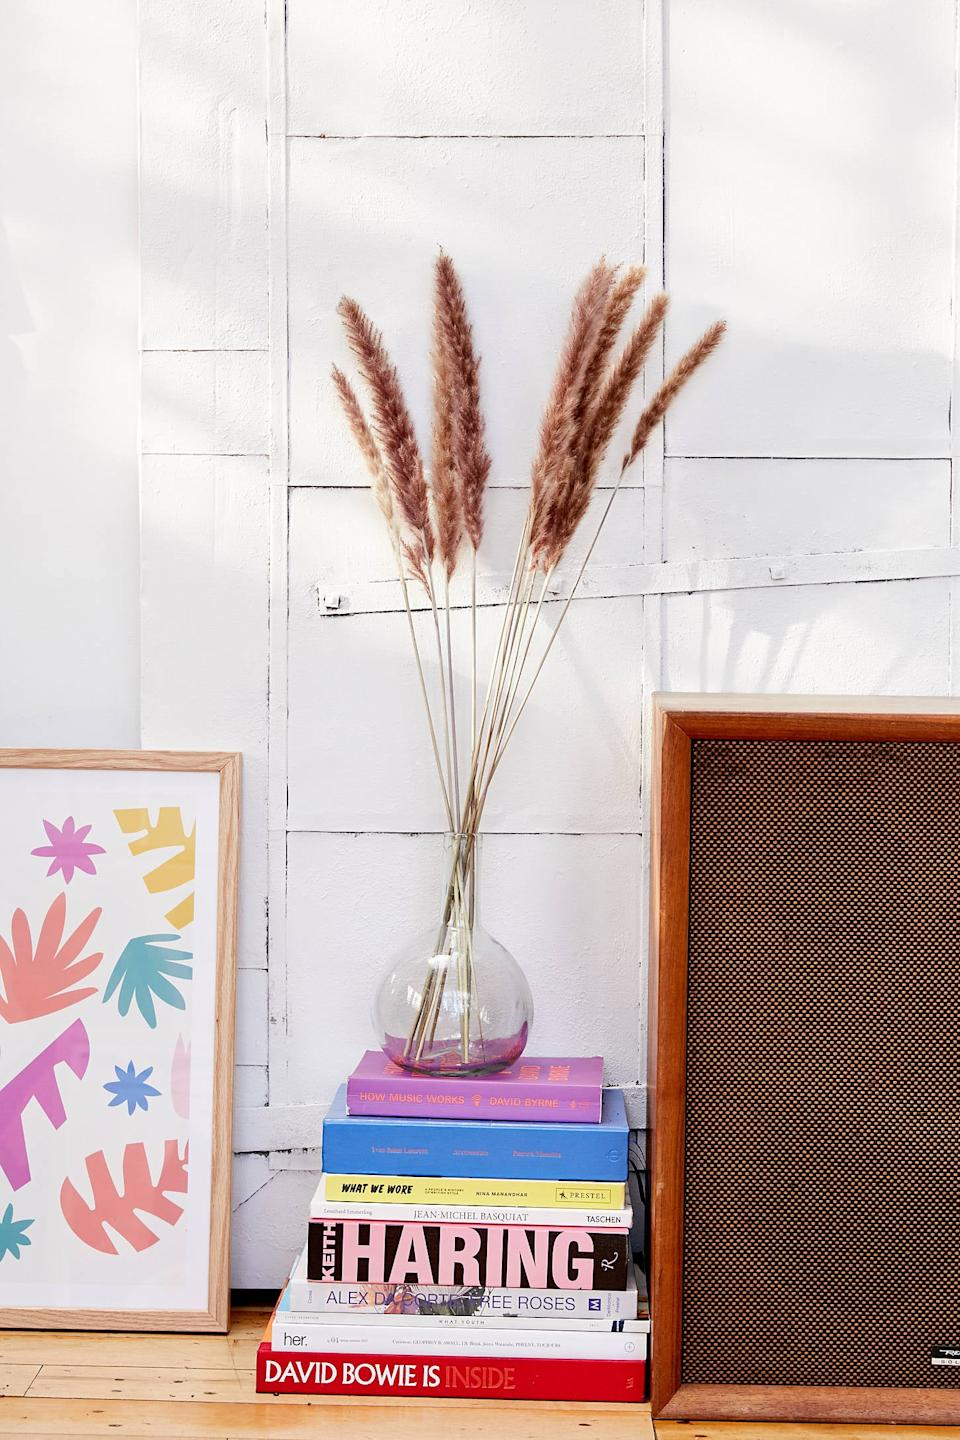 "Sure to get you featured on Instagram, the dried grass and pampas grass trend is still going strong, and for good reason. These beauties instantly liven up a bedroom. <br><br><strong><em><a href=""https://www.urbanoutfitters.com/apartment-room-decor"" rel=""nofollow noopener"" target=""_blank"" data-ylk=""slk:Shop Urban Outfitters"" class=""link rapid-noclick-resp"">Shop Urban Outfitters</a></em></strong><br><br><strong>Urban Outfitters</strong> Dried Fountain Grass Bunch, $, available at <a href=""https://go.skimresources.com/?id=30283X879131&url=https%3A%2F%2Fwww.urbanoutfitters.com%2Fshop%2Fdried-fountain-grass-bunch%3Fcolor%3D111%26type%3DREGULAR%26size%3DONE%2520SIZE%26quantity%3D1"" rel=""nofollow noopener"" target=""_blank"" data-ylk=""slk:Urban Outfitters"" class=""link rapid-noclick-resp"">Urban Outfitters</a>"